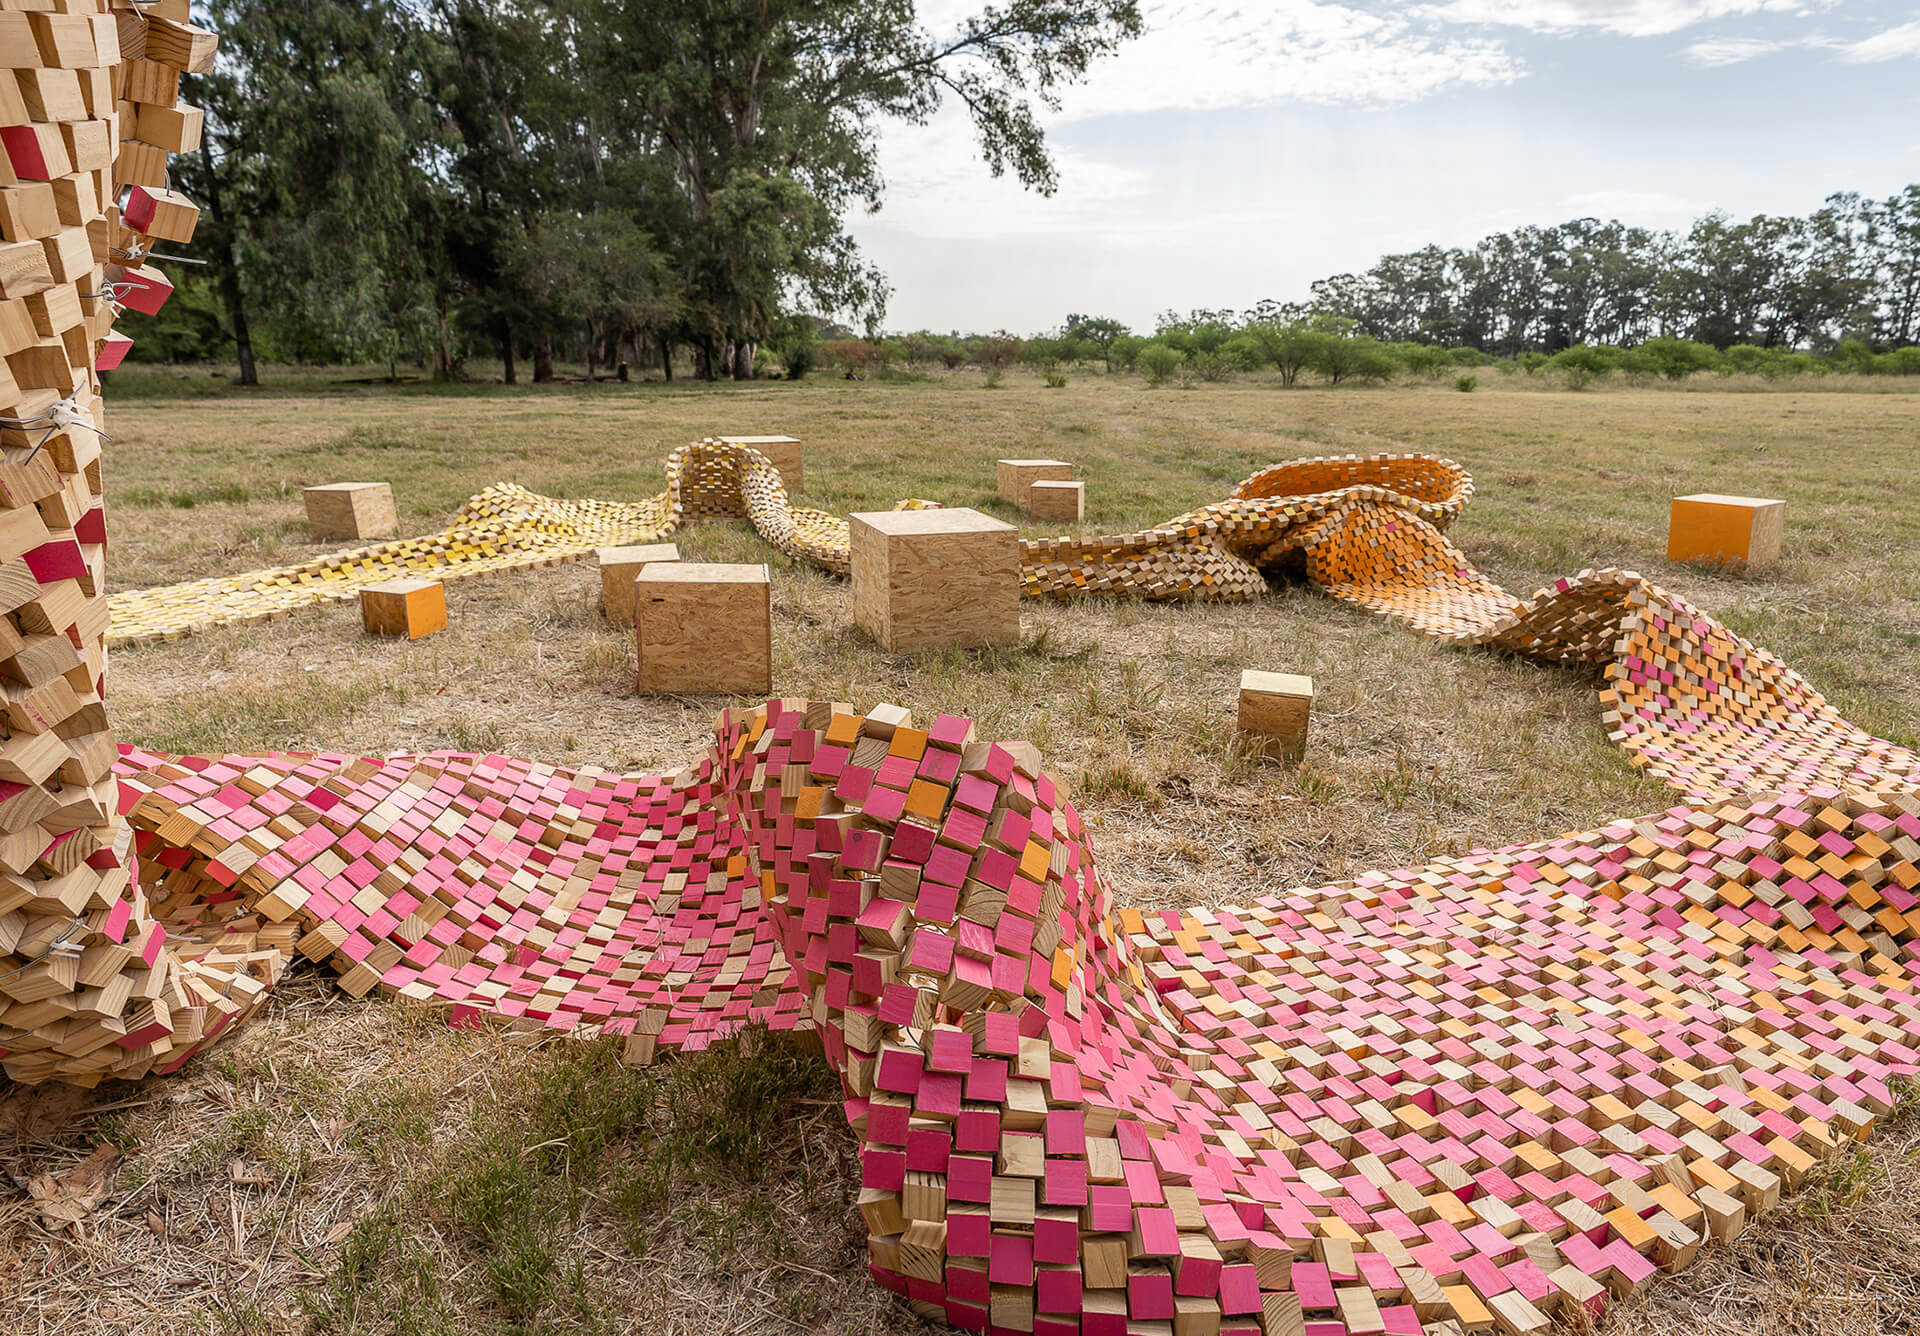 Project Winter Sun using a flexible fabric creates an organic form of installation art | Installations in Wood | STIRworld